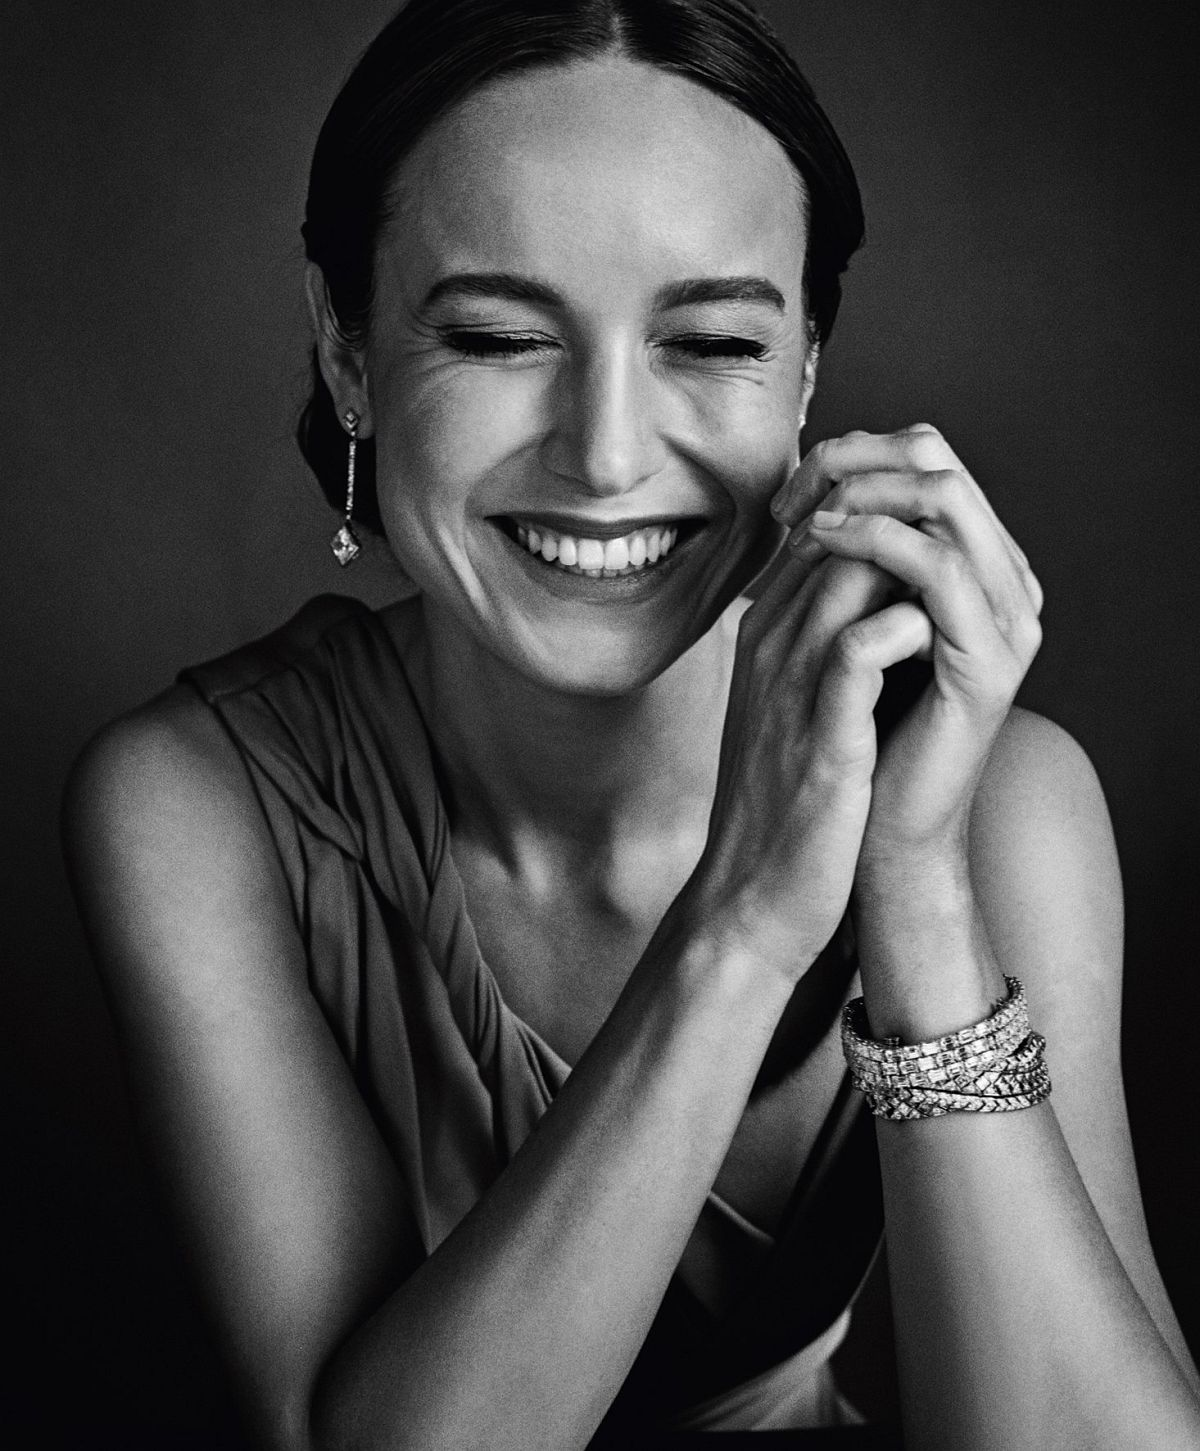 © Profiles by Marc Hom, published by teNeues, www.teneues.com, Brie Larson, Photo © 2016 Marc Hom